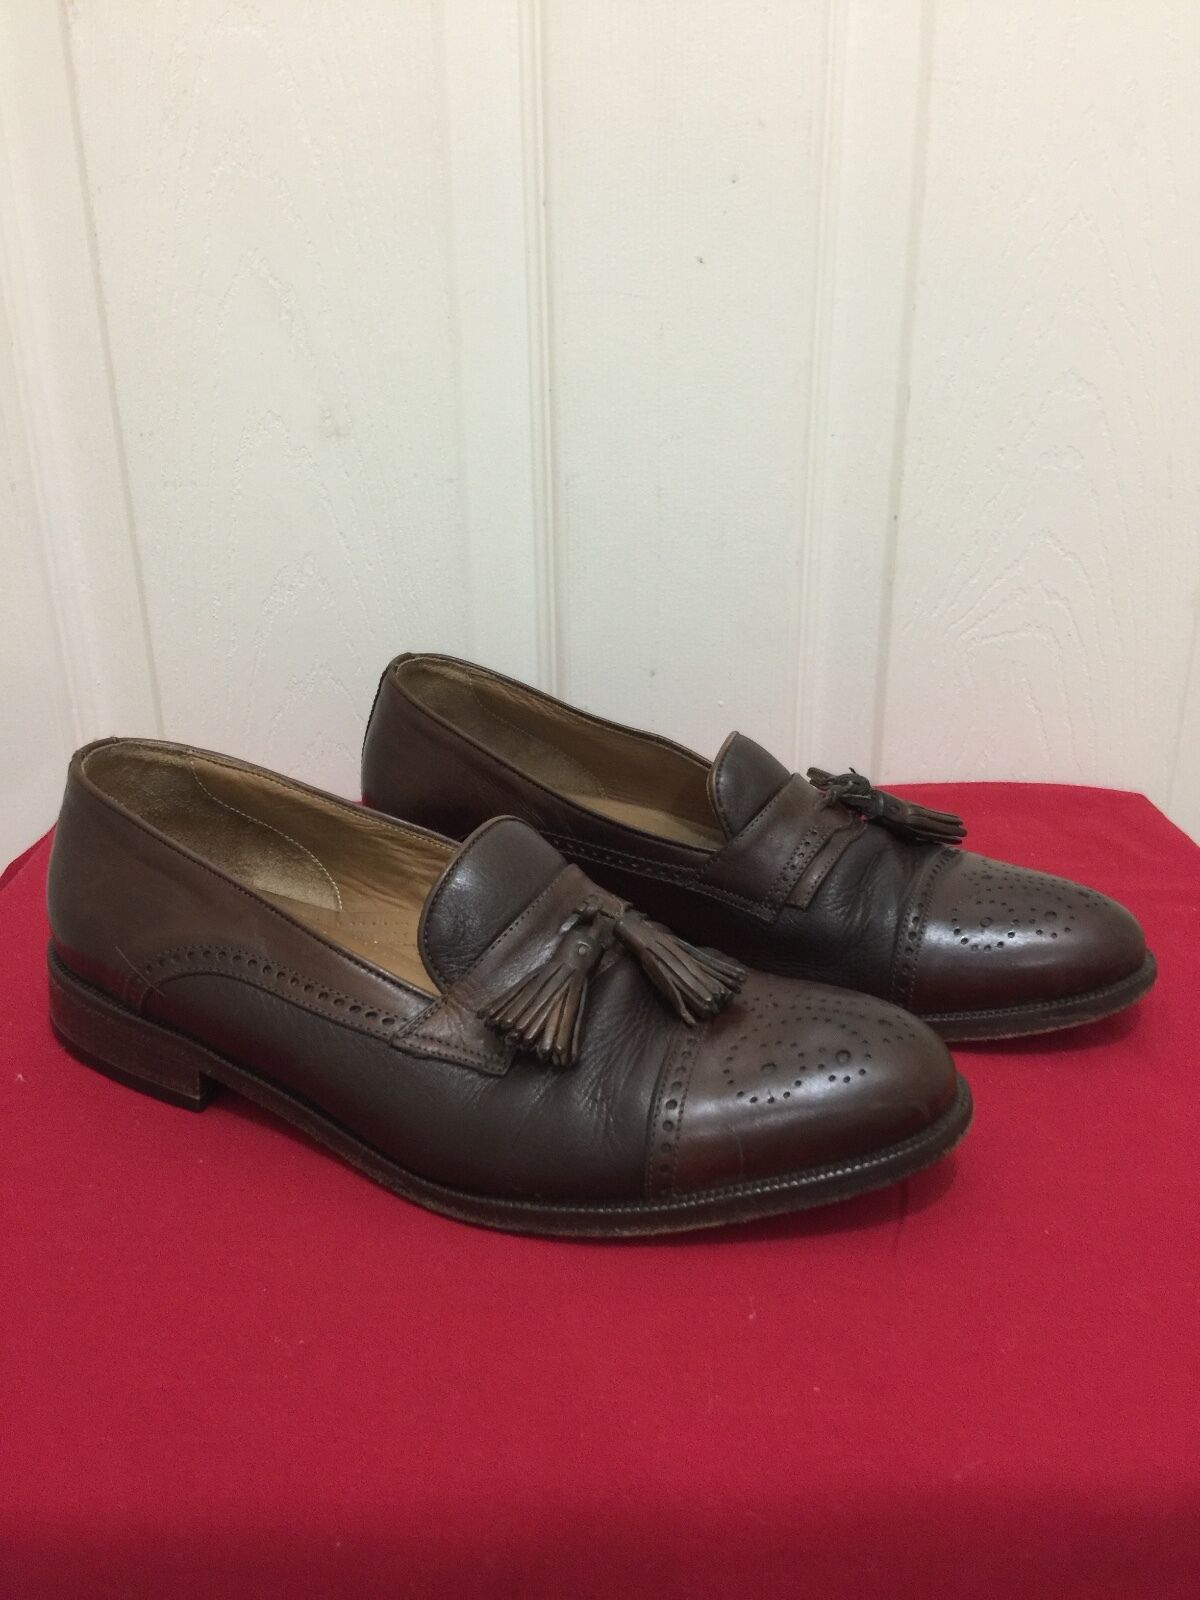 FLORSHEIM Imperial Uomo 9.5 D Tassel Loafers Cap Toe Brown Leather Dress Shoes